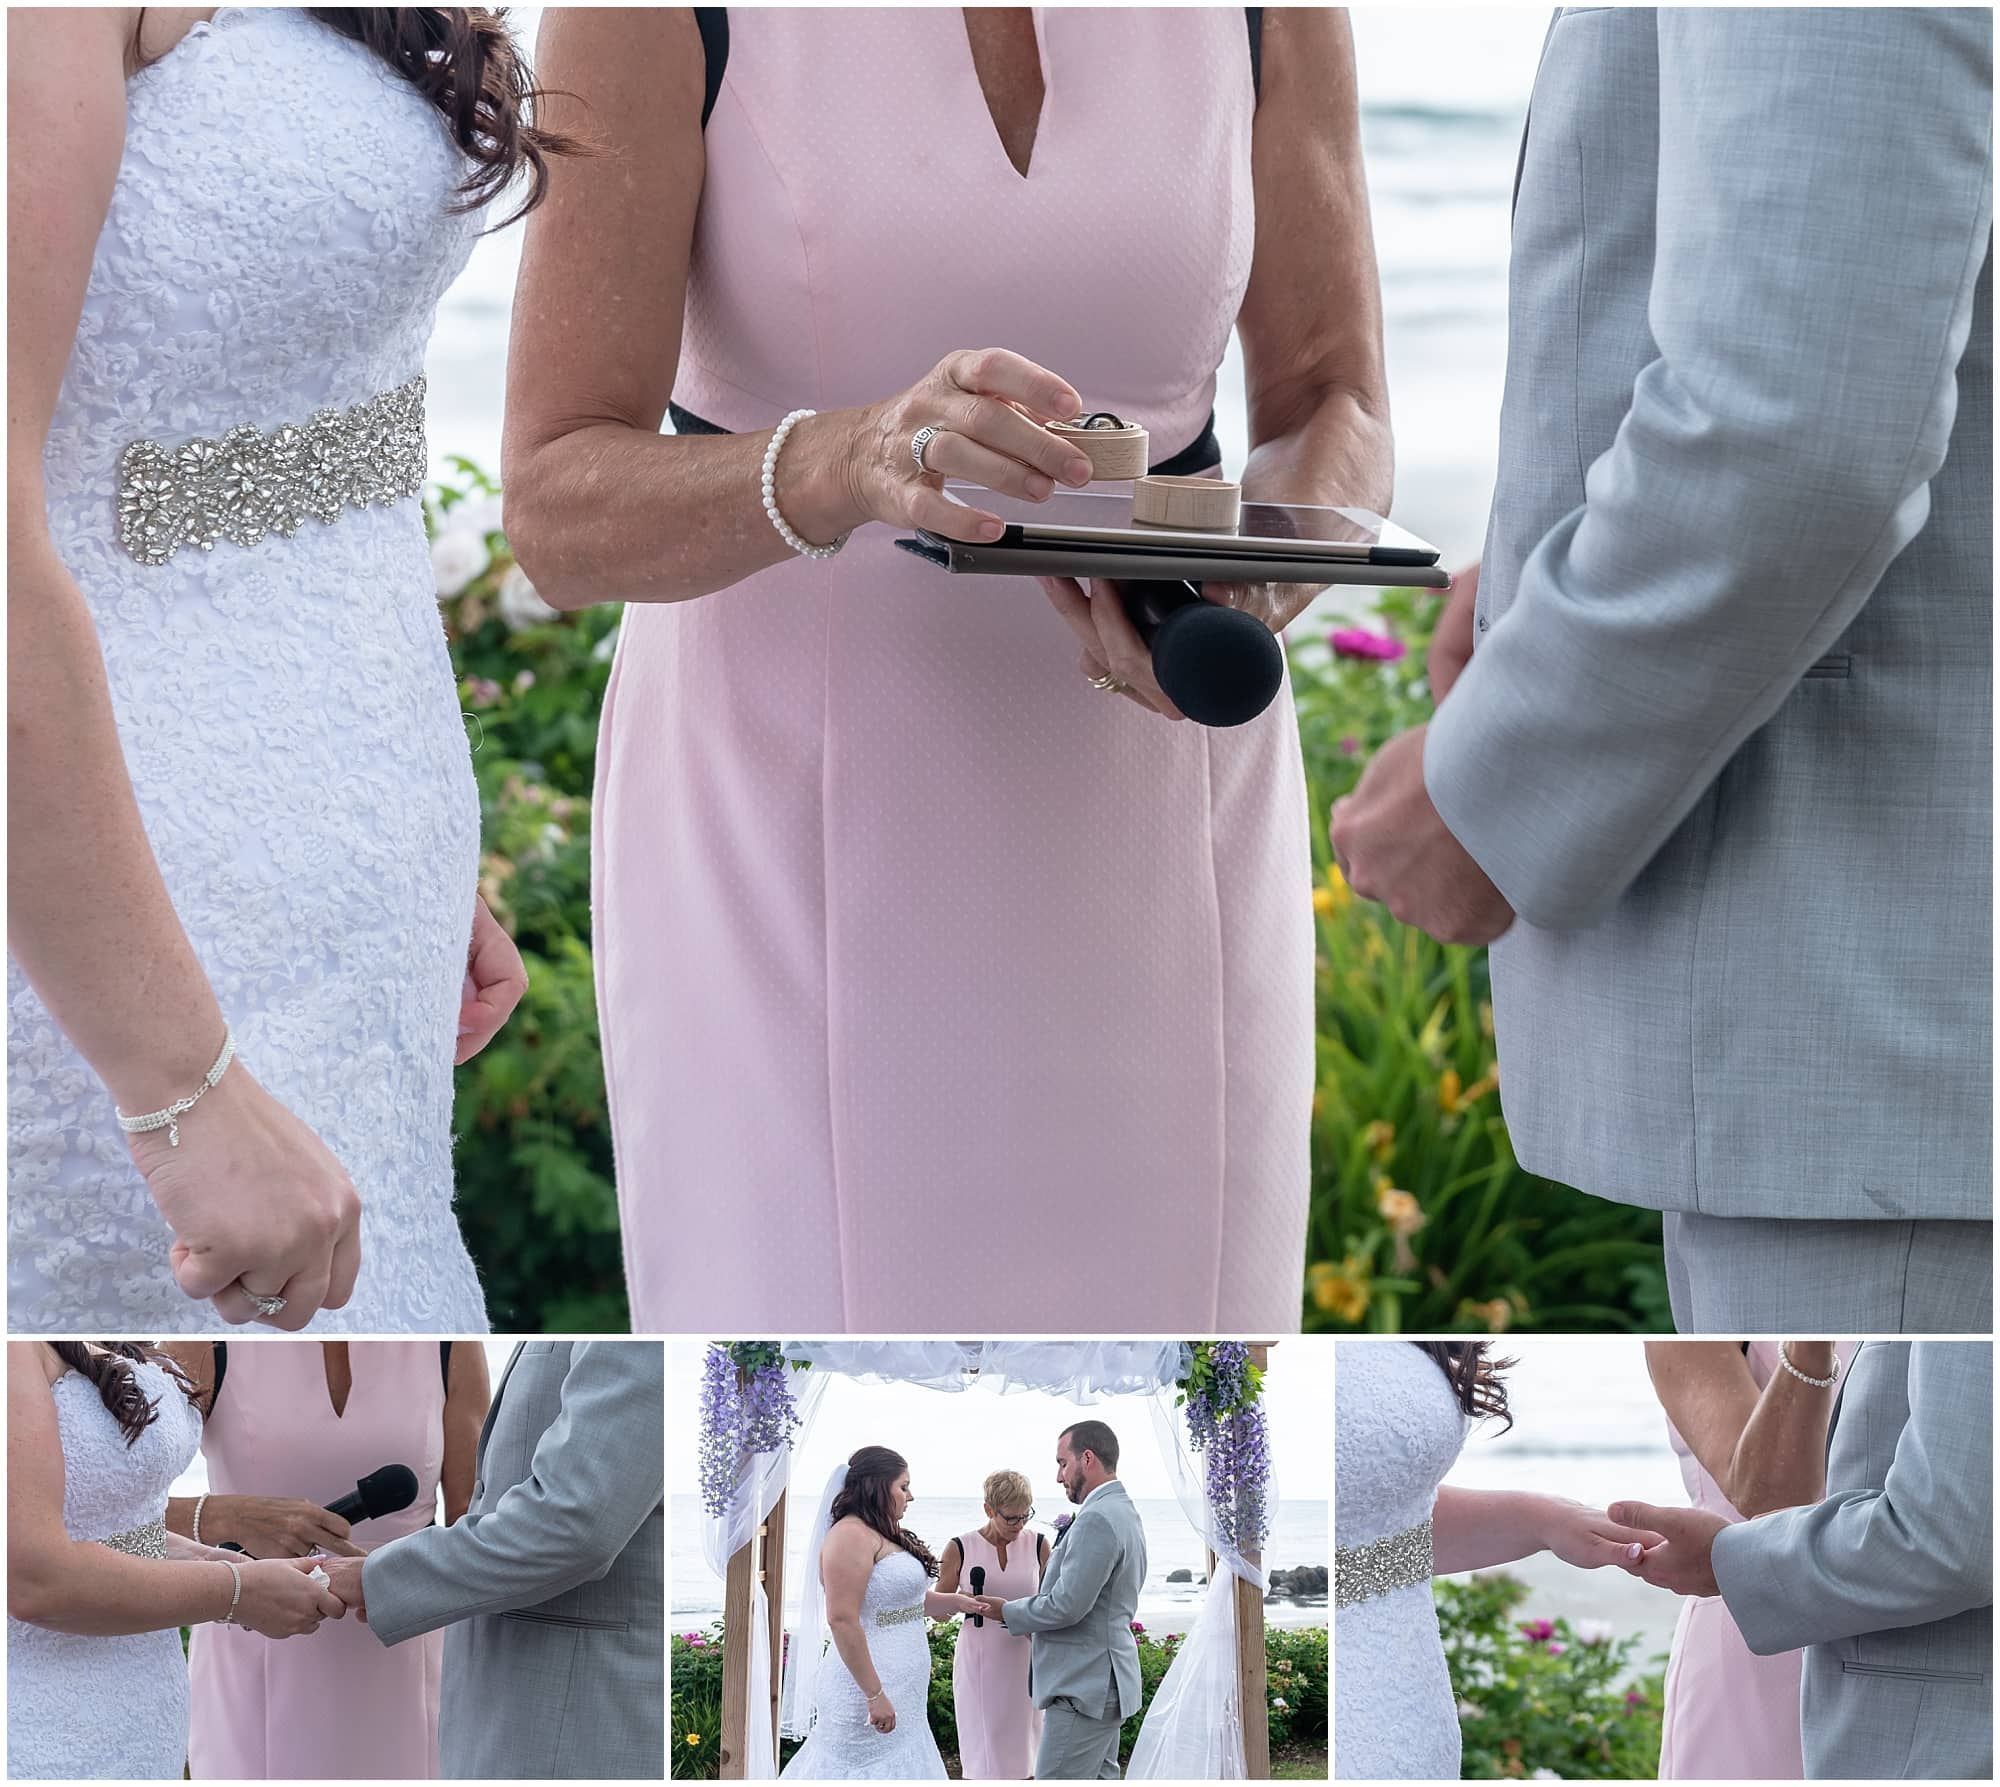 The bride and groom exchange wedding rings during their ceremony under a wedding arch at the White Point Beach Resort in Nova Scotia.